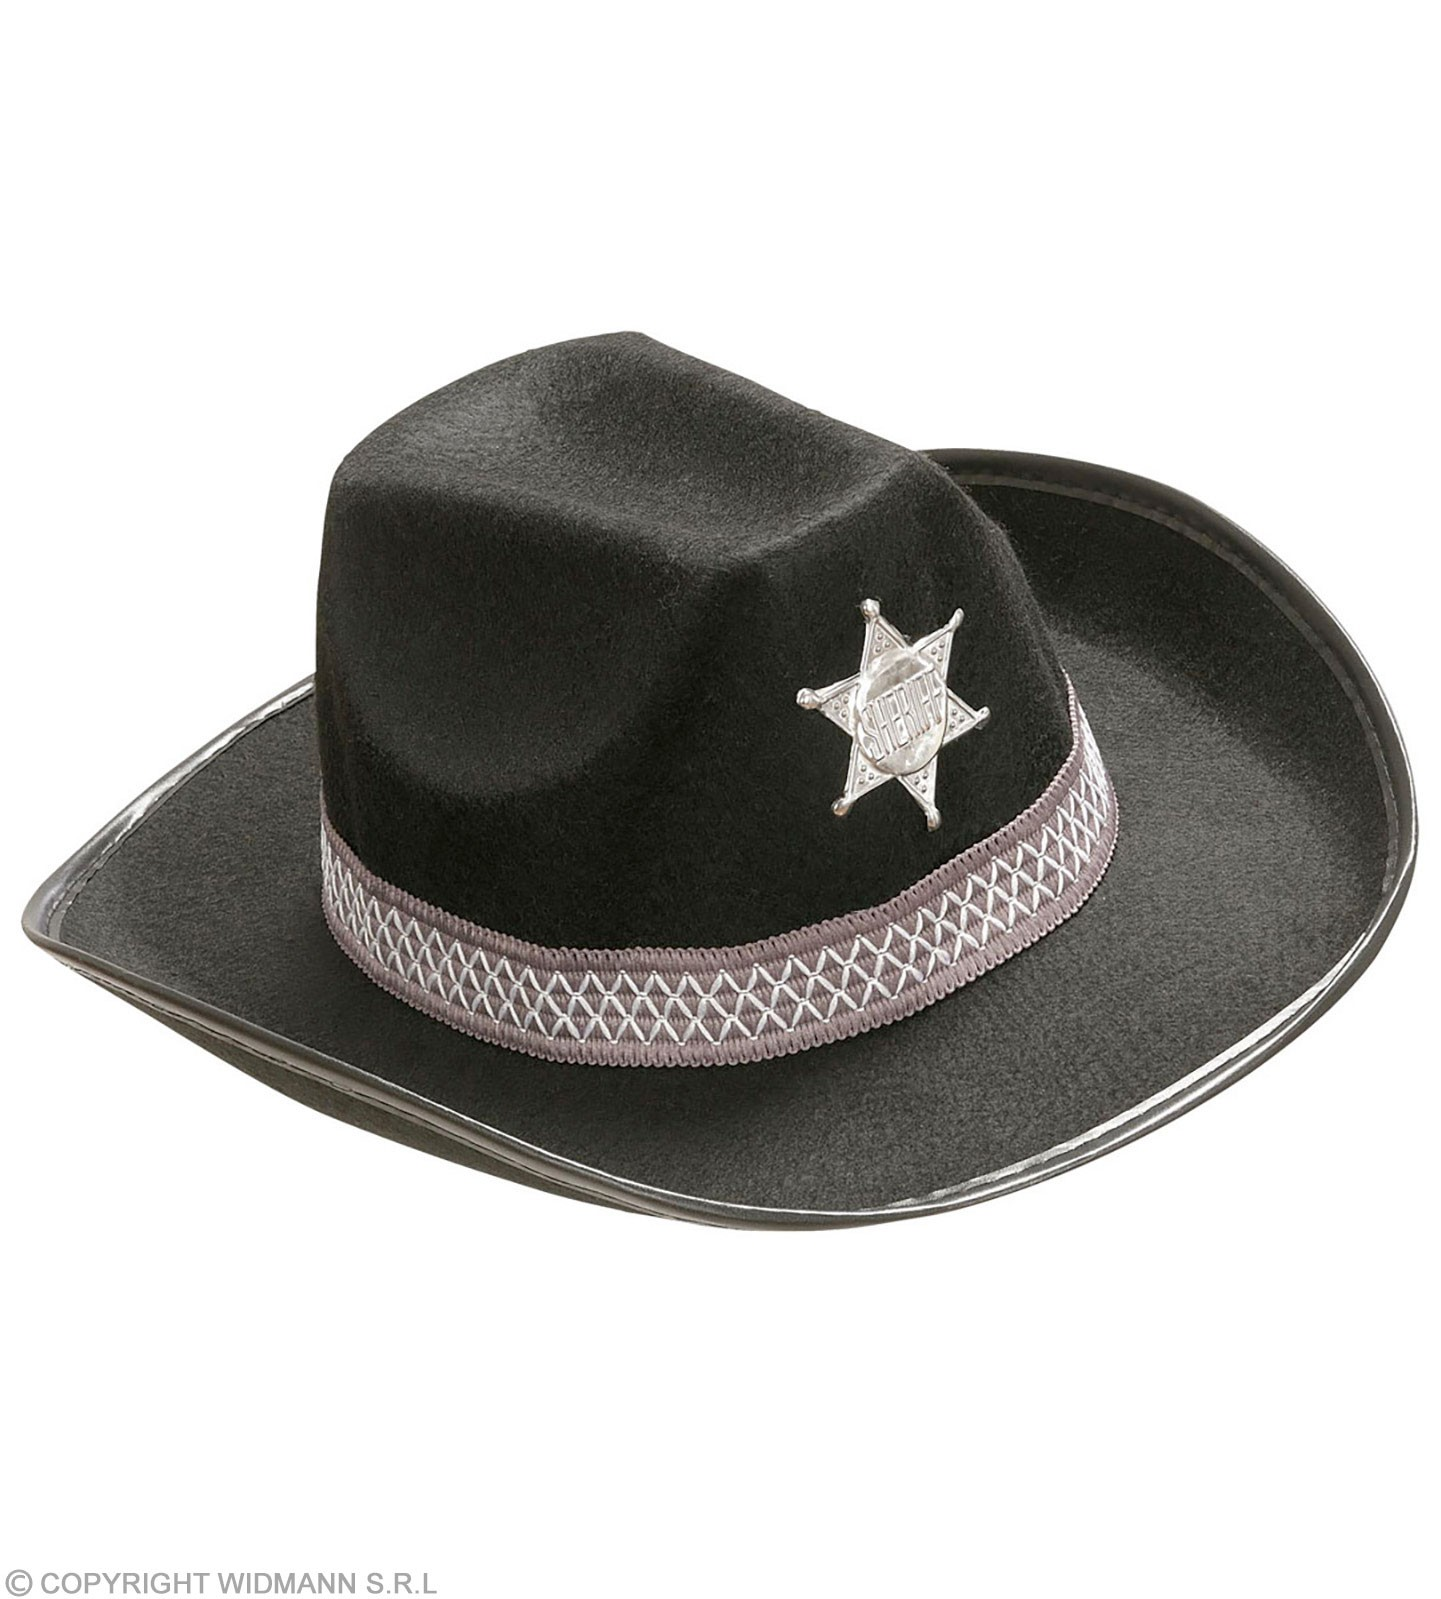 Child Size Black Felt Sheriff Hat Fancy Dress Boys